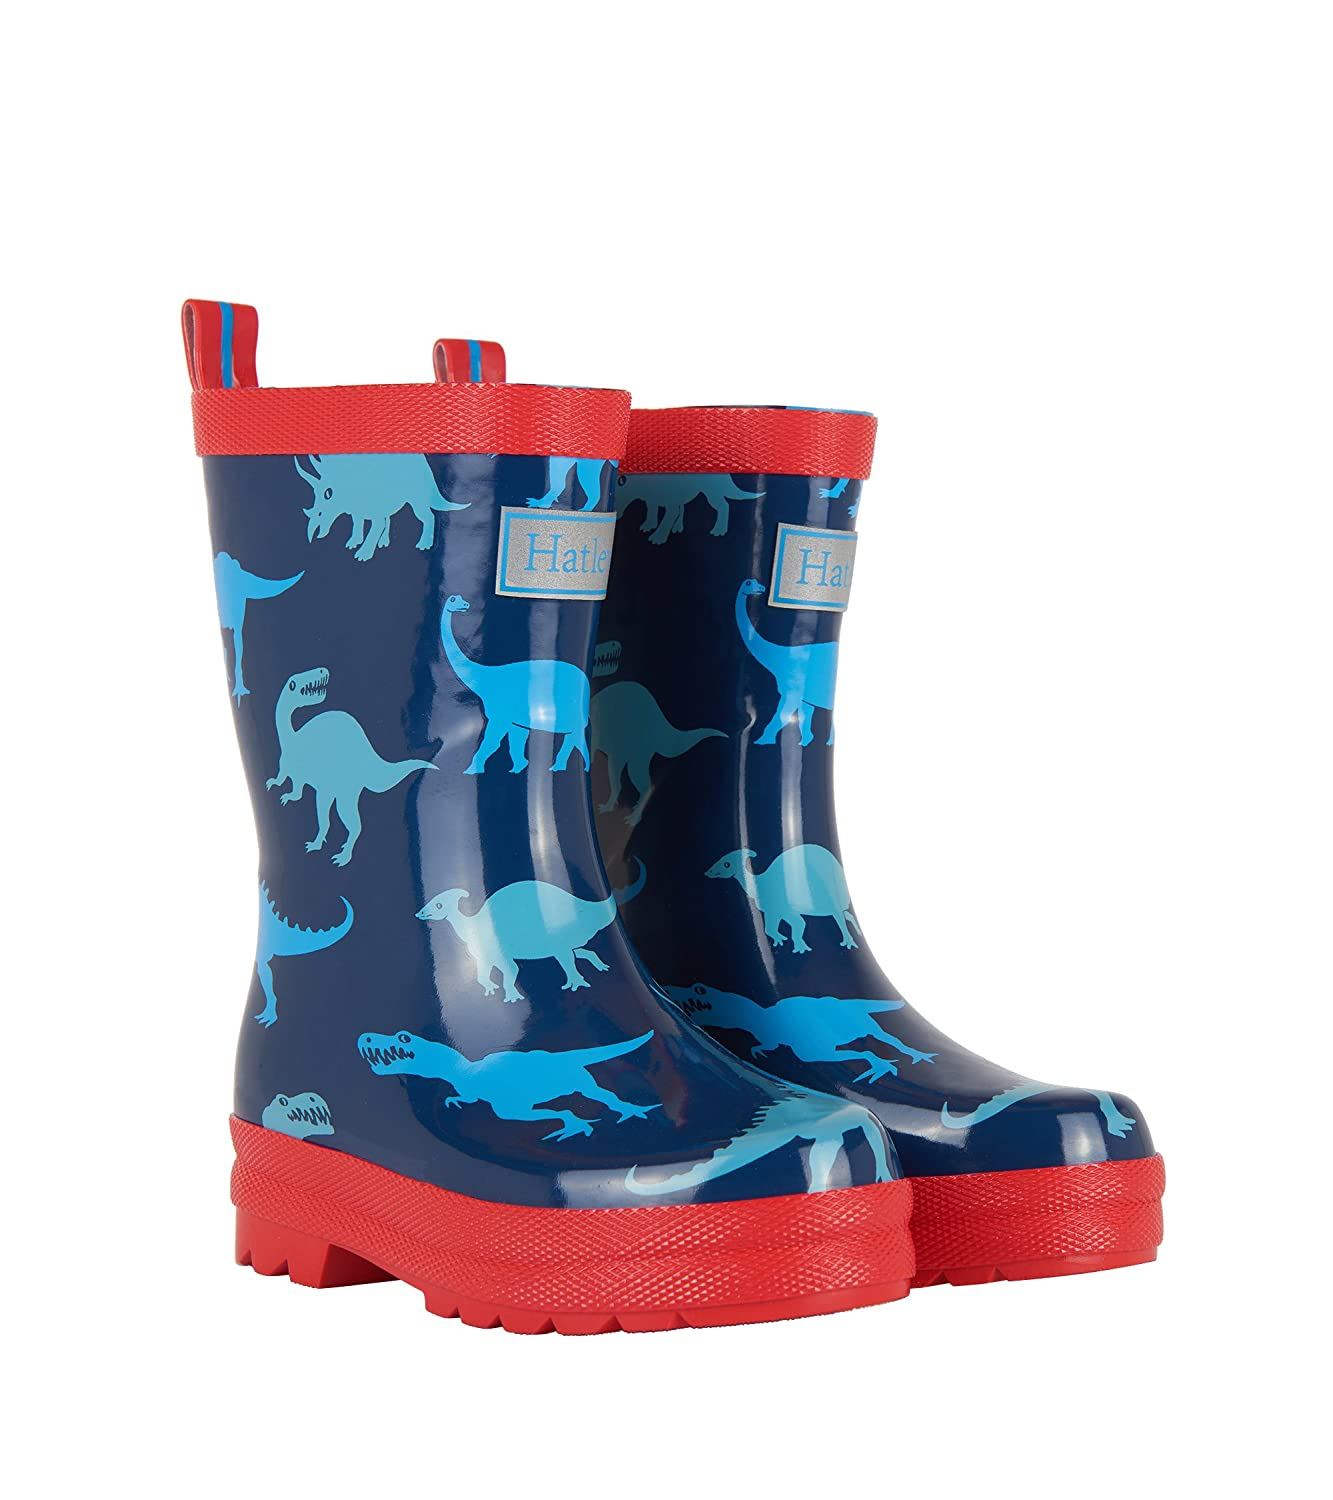 Hatley Kids Rain Boots - Lots Of Dinos Dino Shadows 12 M US Little Kid Hatley Children's Apparel RB0DINO478